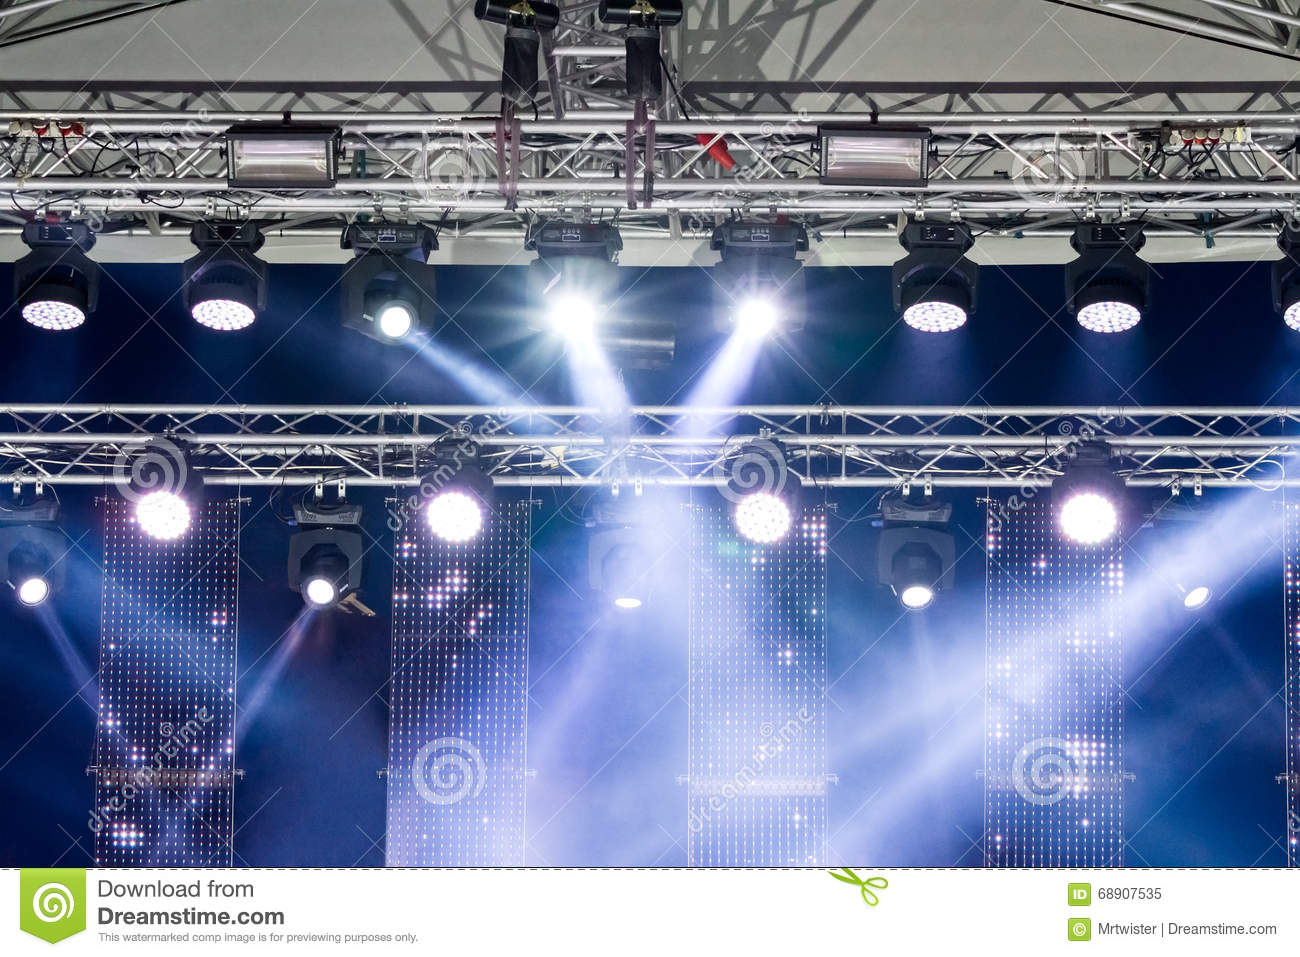 Stage lighting equipment & Stage lighting equipment stock image. Image of electricity - 68907535 azcodes.com